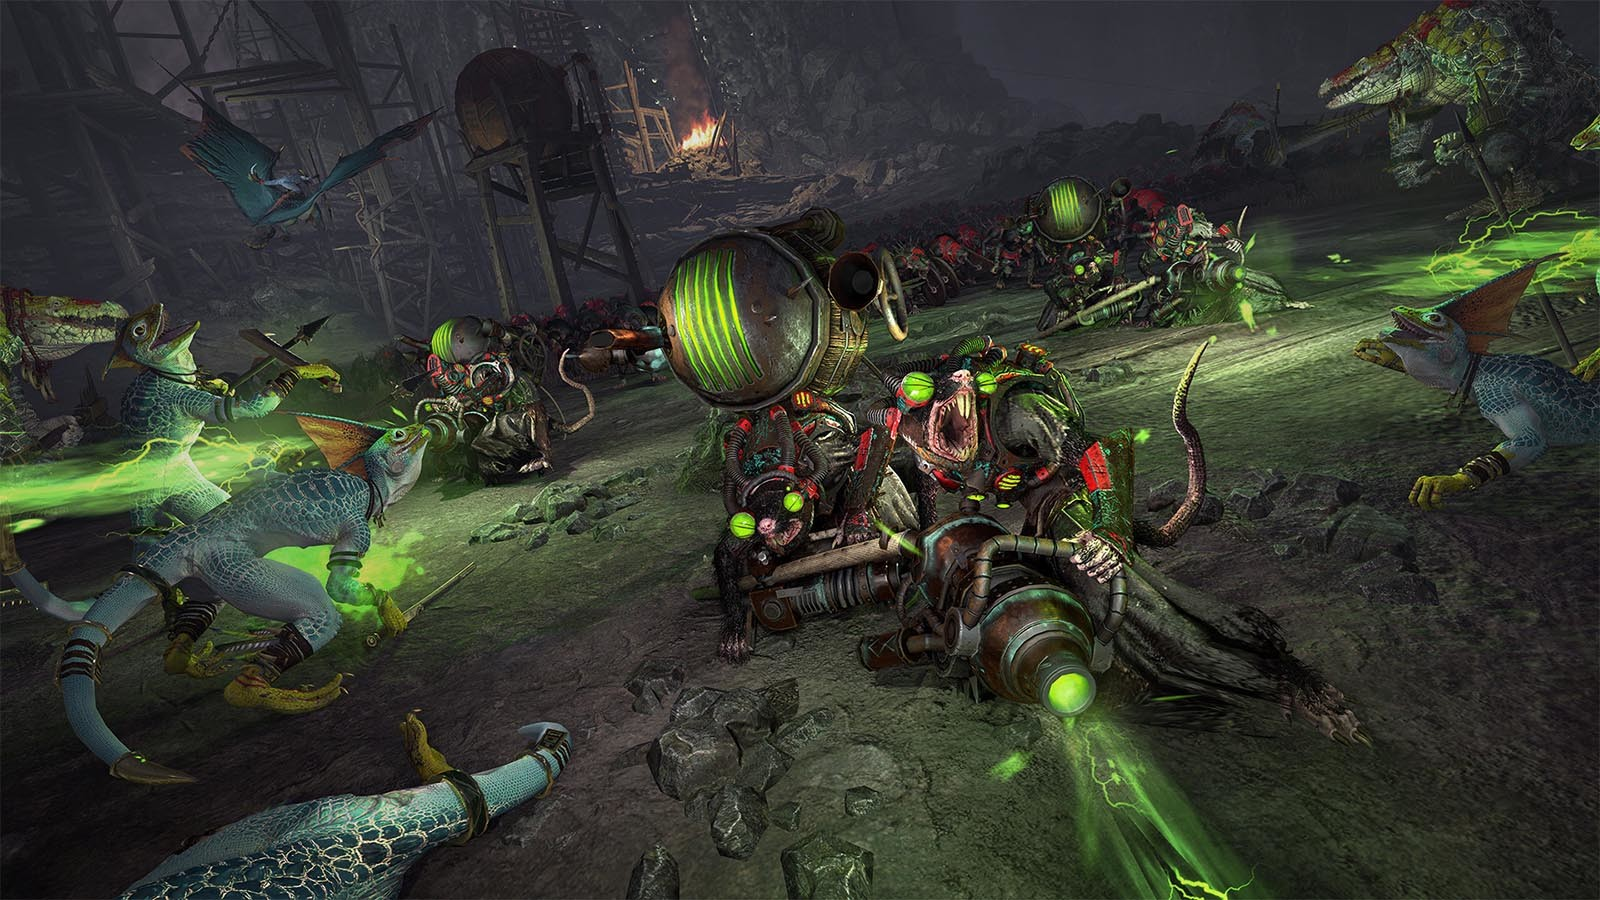 Total War: WARHAMMER II [Steam CD Key] for PC - Buy now